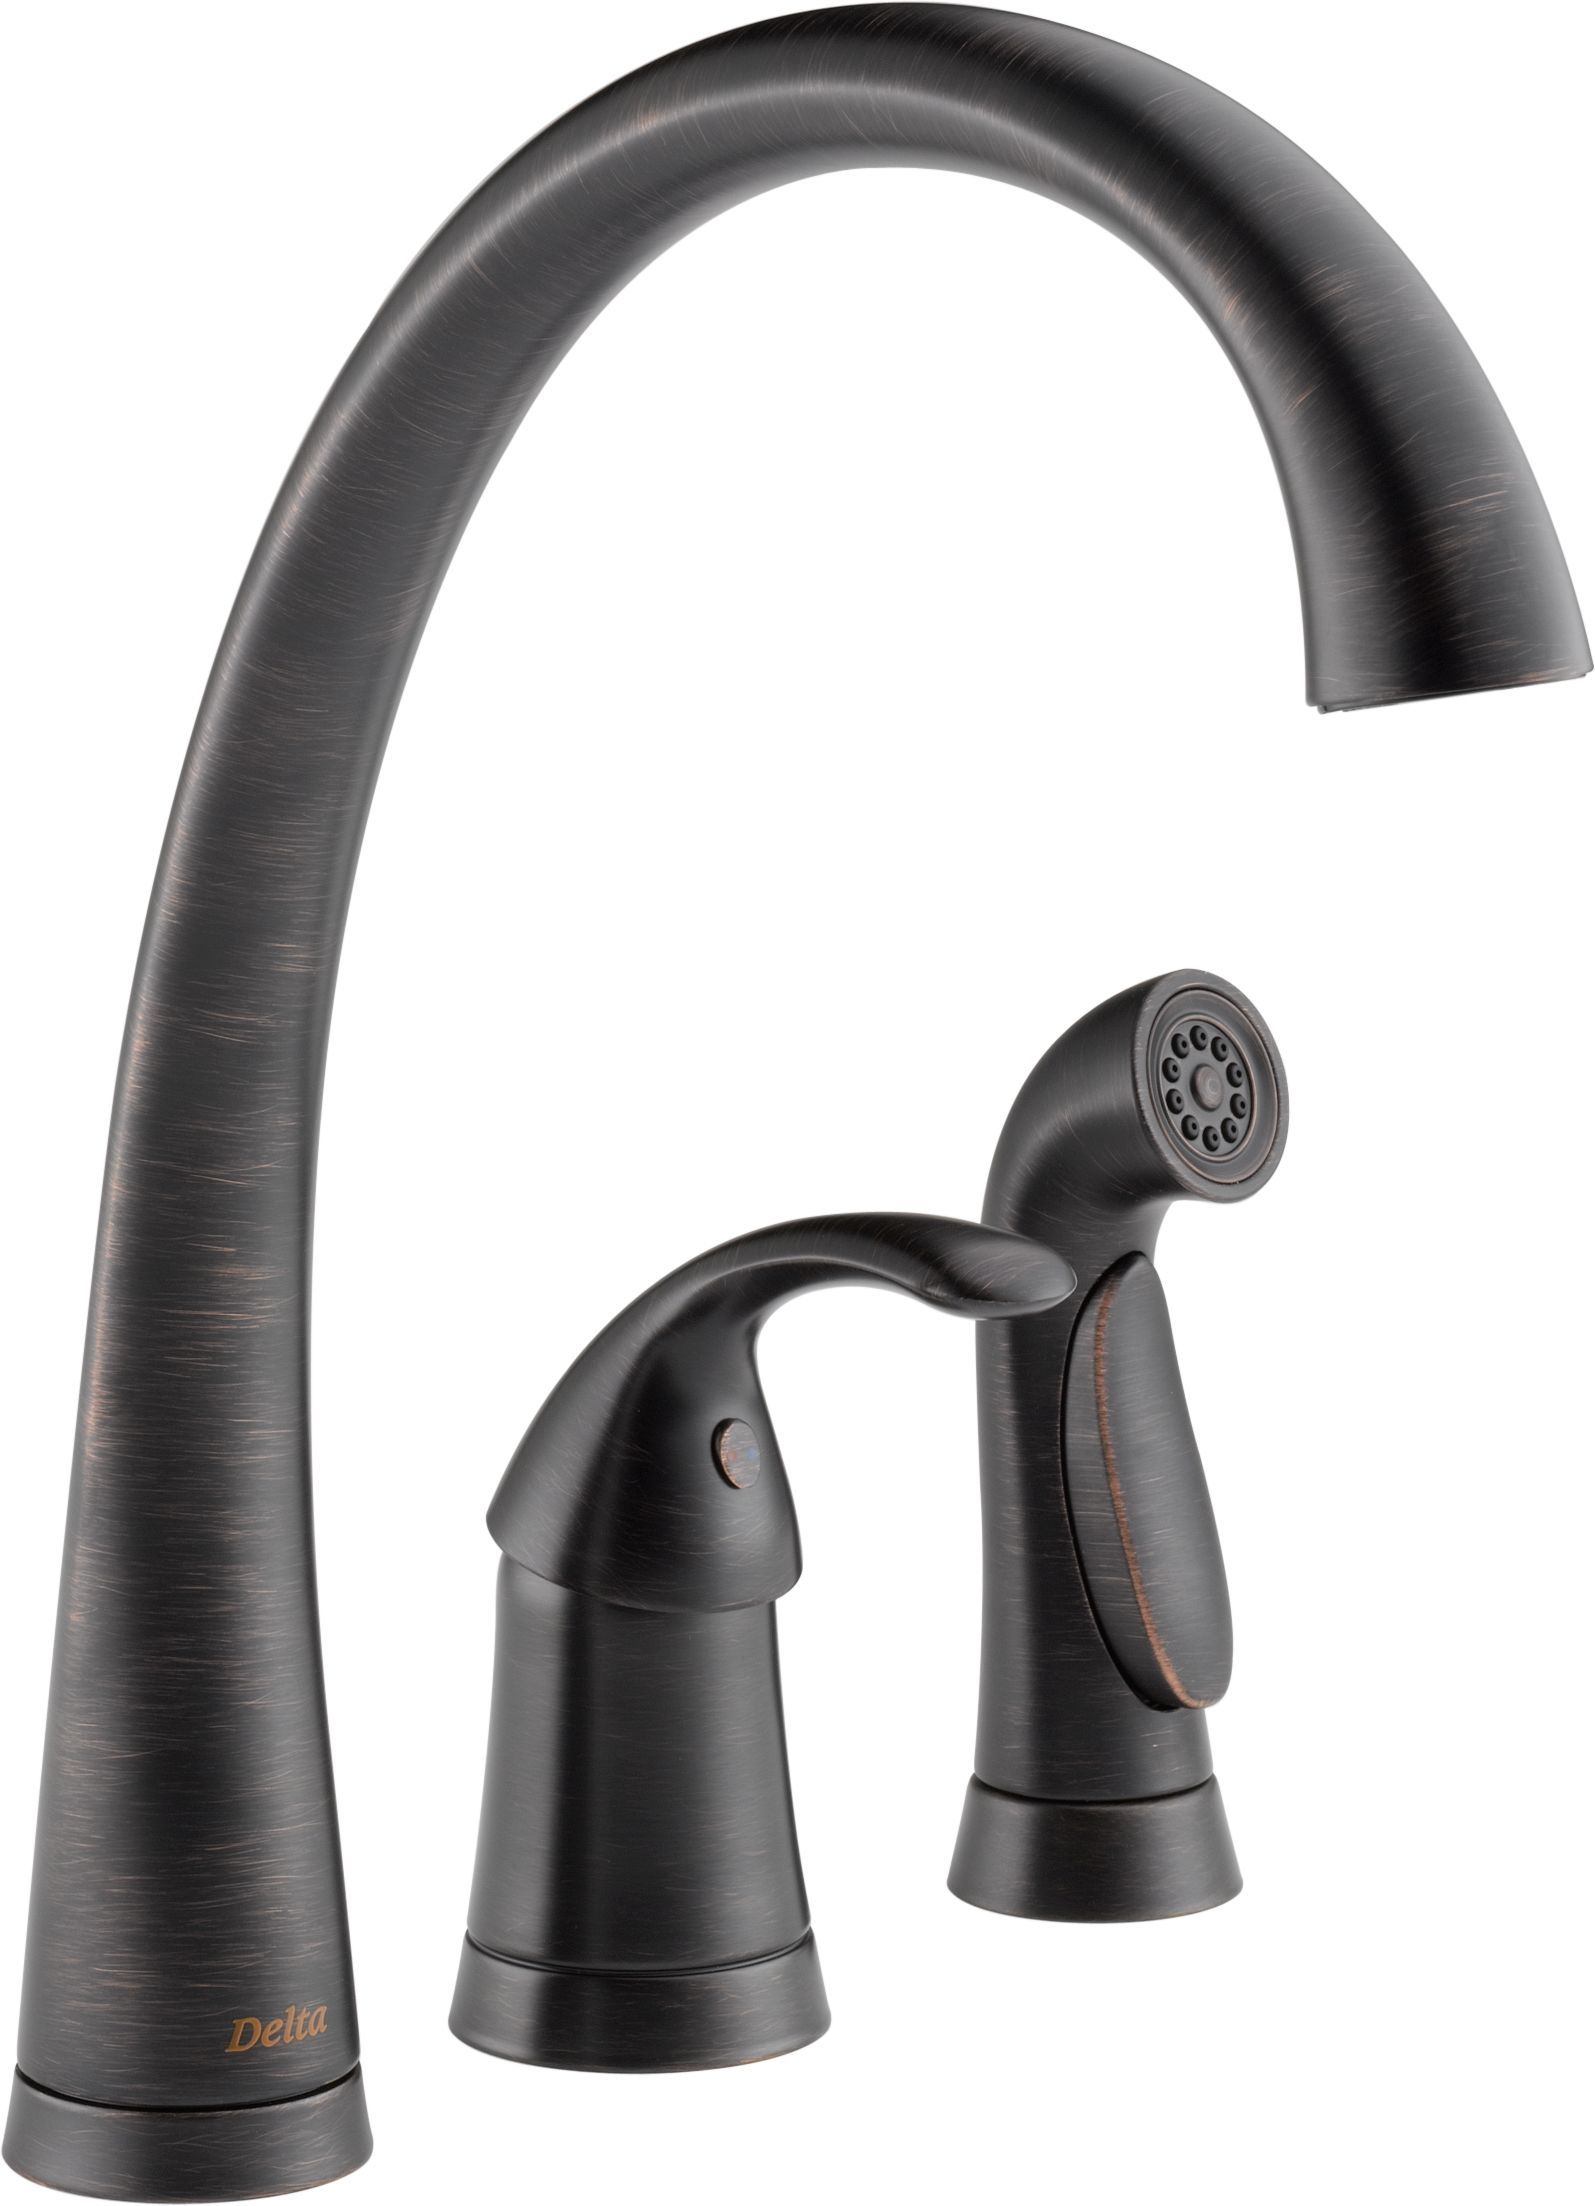 replacement delta lovely of images handle new faucet single washer beautiful kitchen